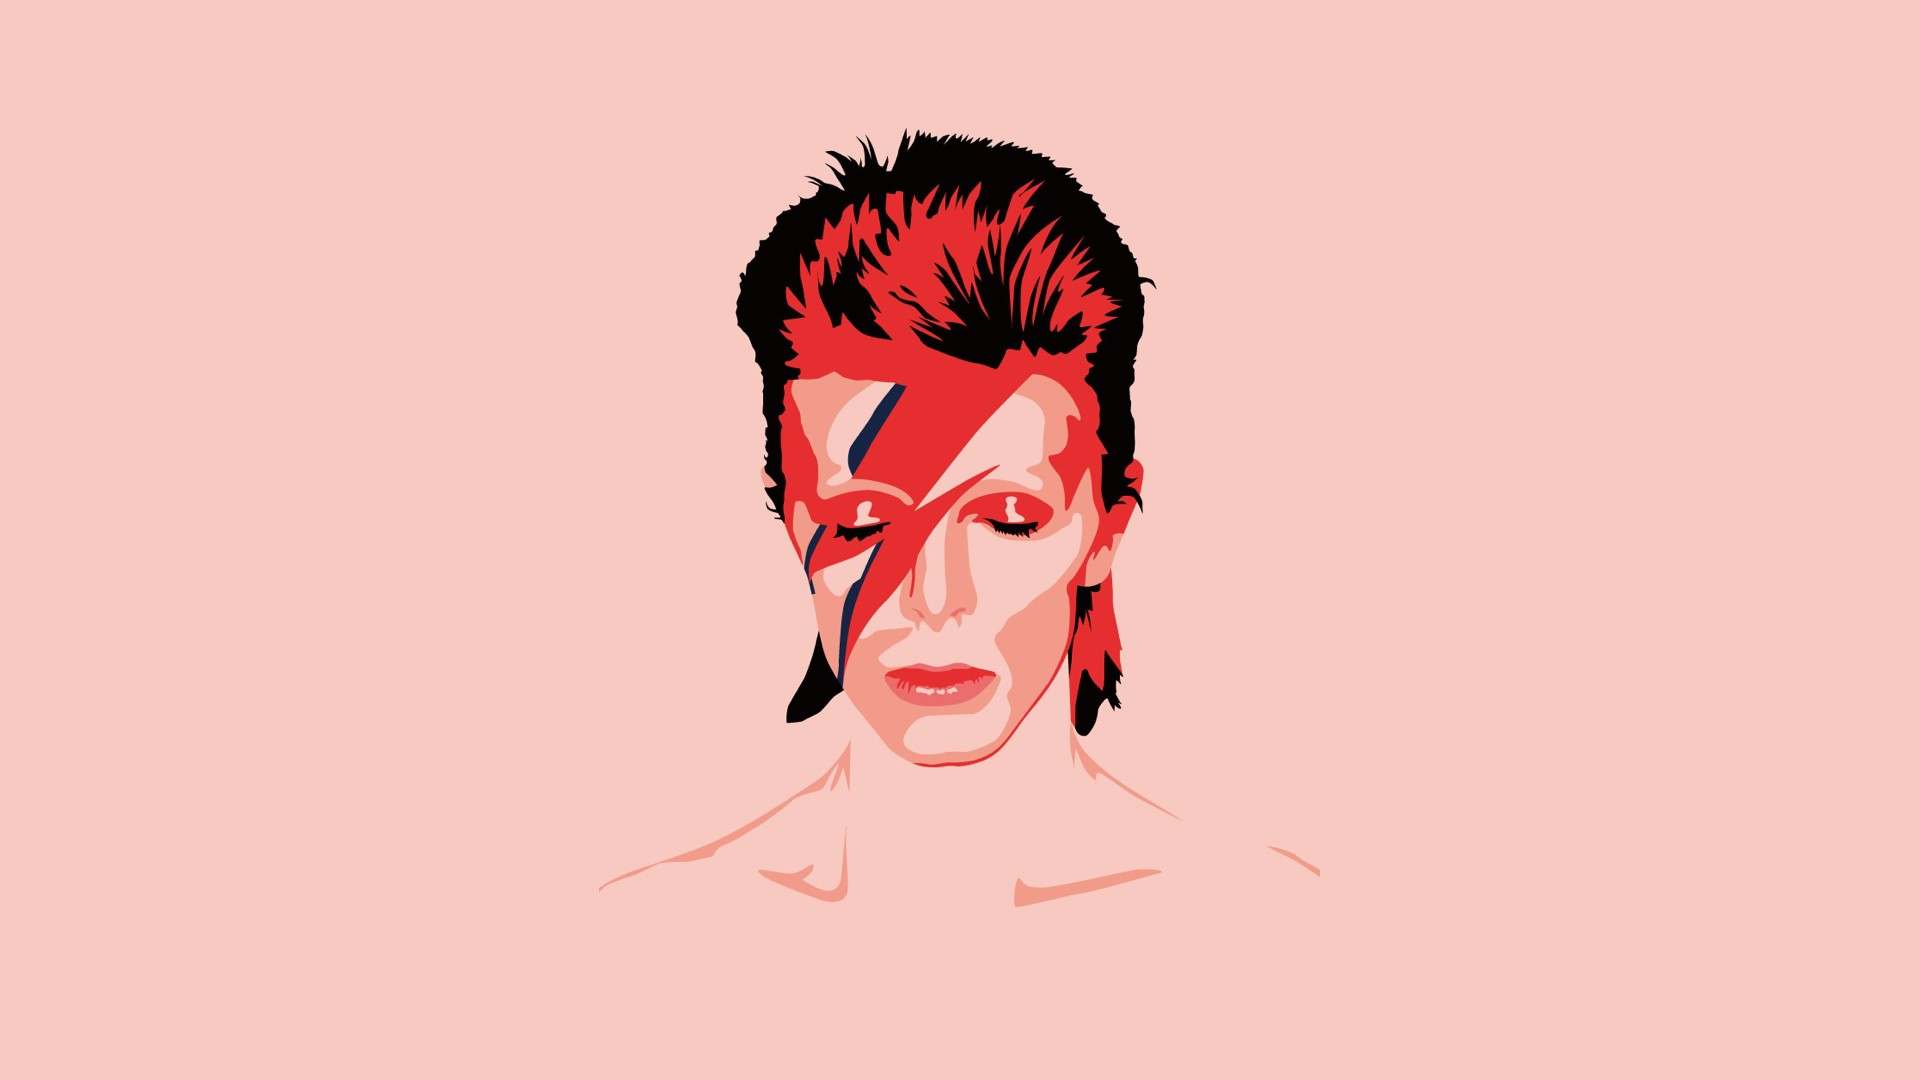 David Bowie wallpaper ·① Download free amazing High ...